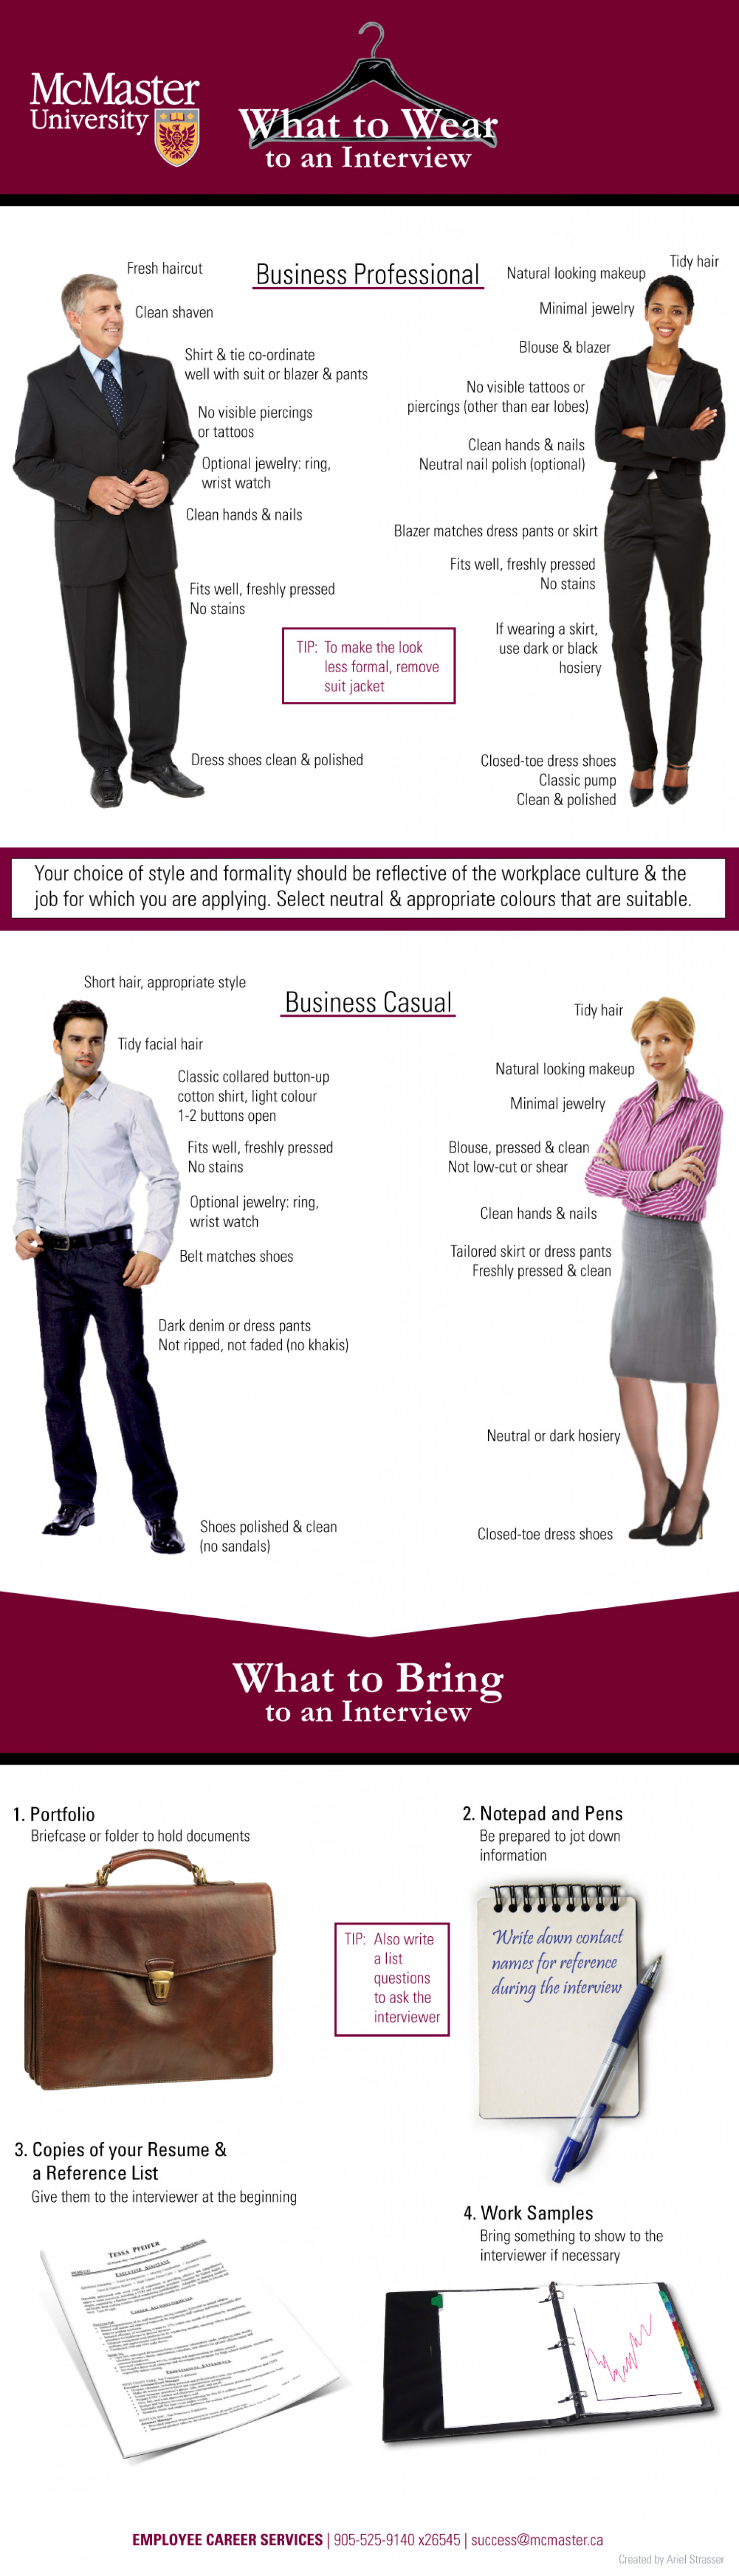 What to Wear and Bring to a Job Interview Infographic